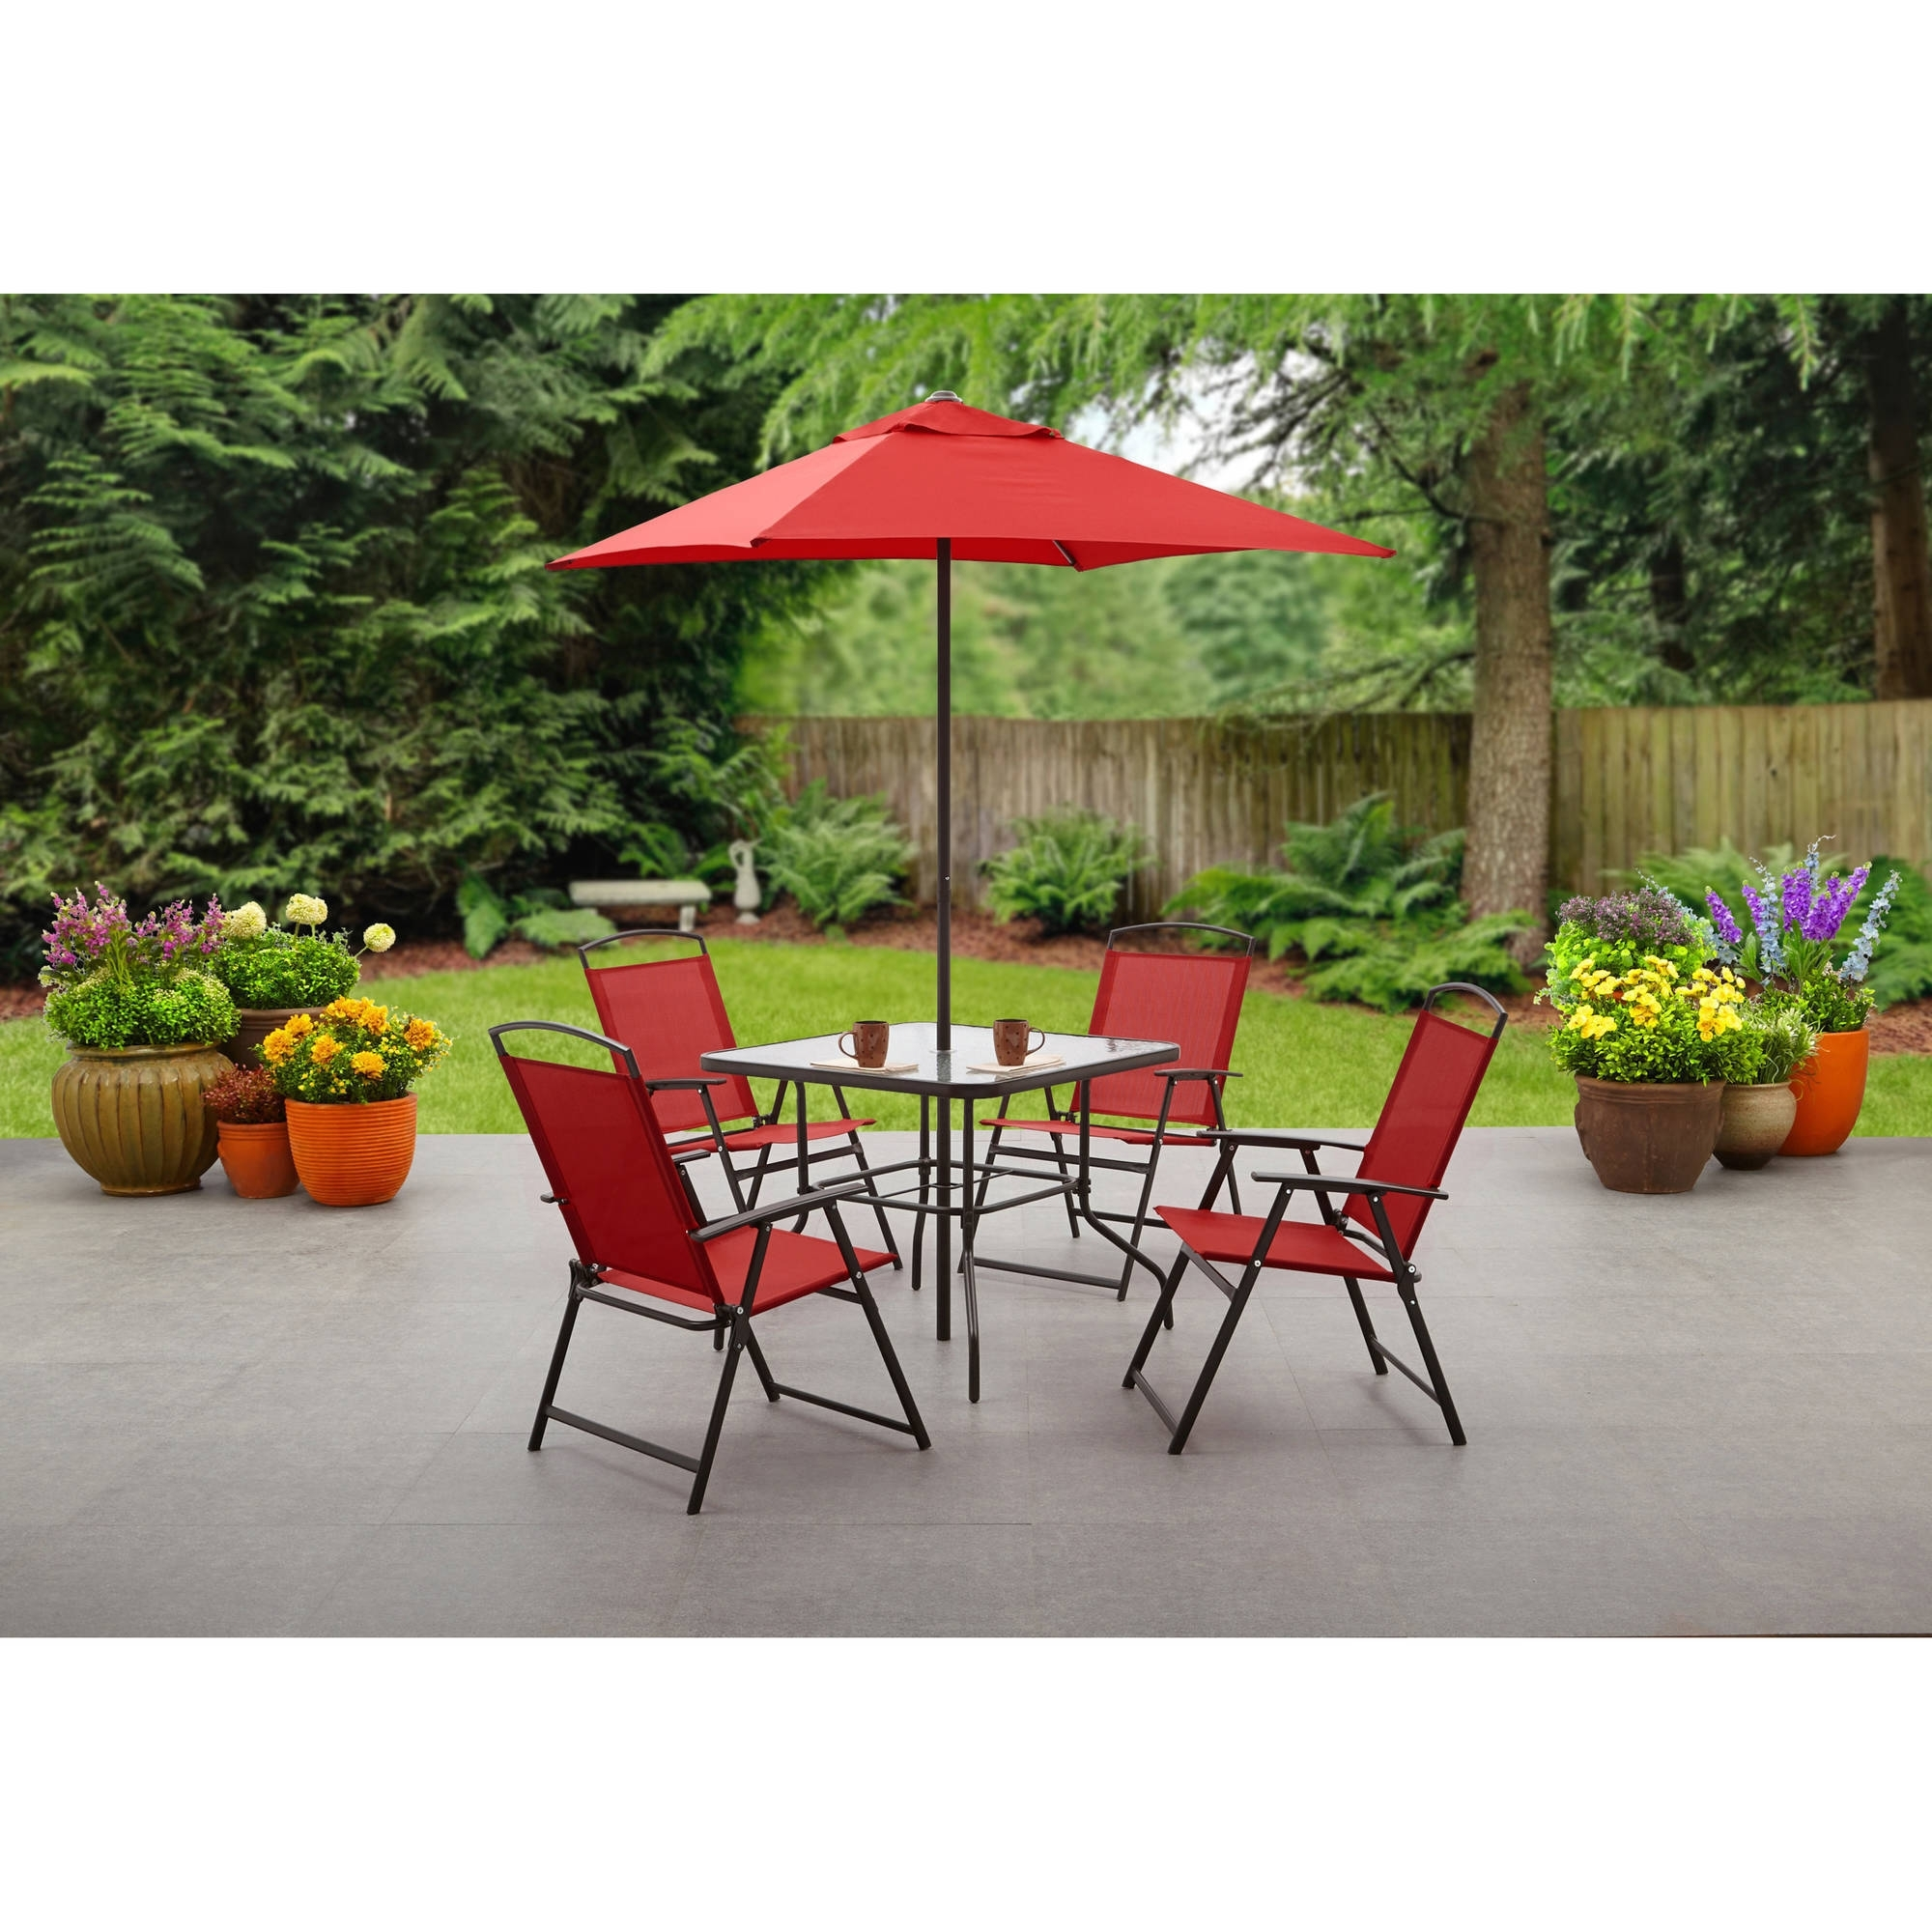 Latest Small Patio Tables With Umbrellas Within Mainstays Albany Lane 6 Piece Folding Dining Set, Multiple Colors (View 20 of 20)